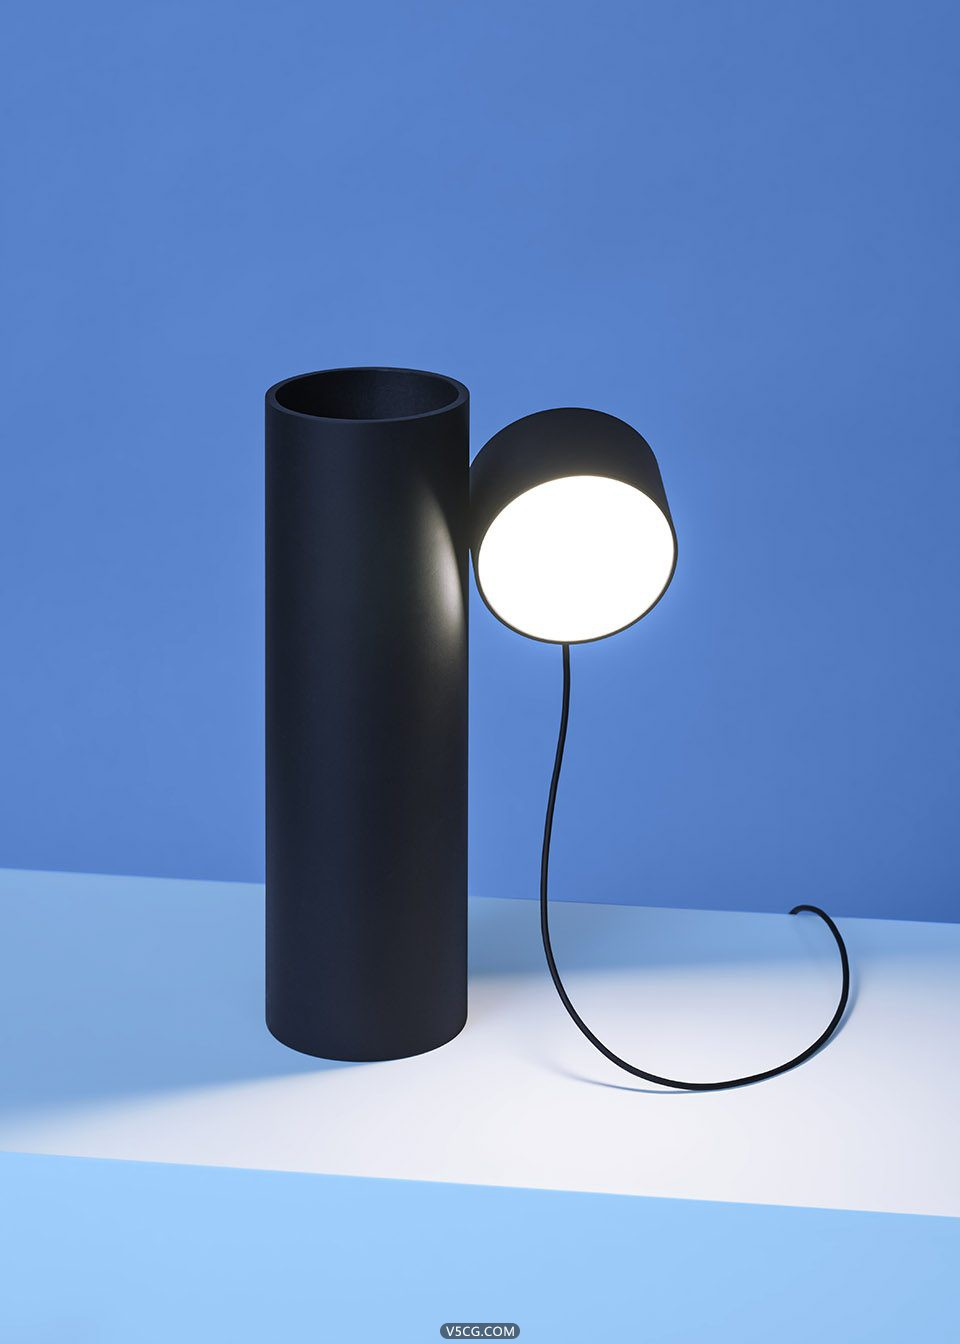 002-Lamp-Family-by-Earnest-Studio-960x1344.jpg